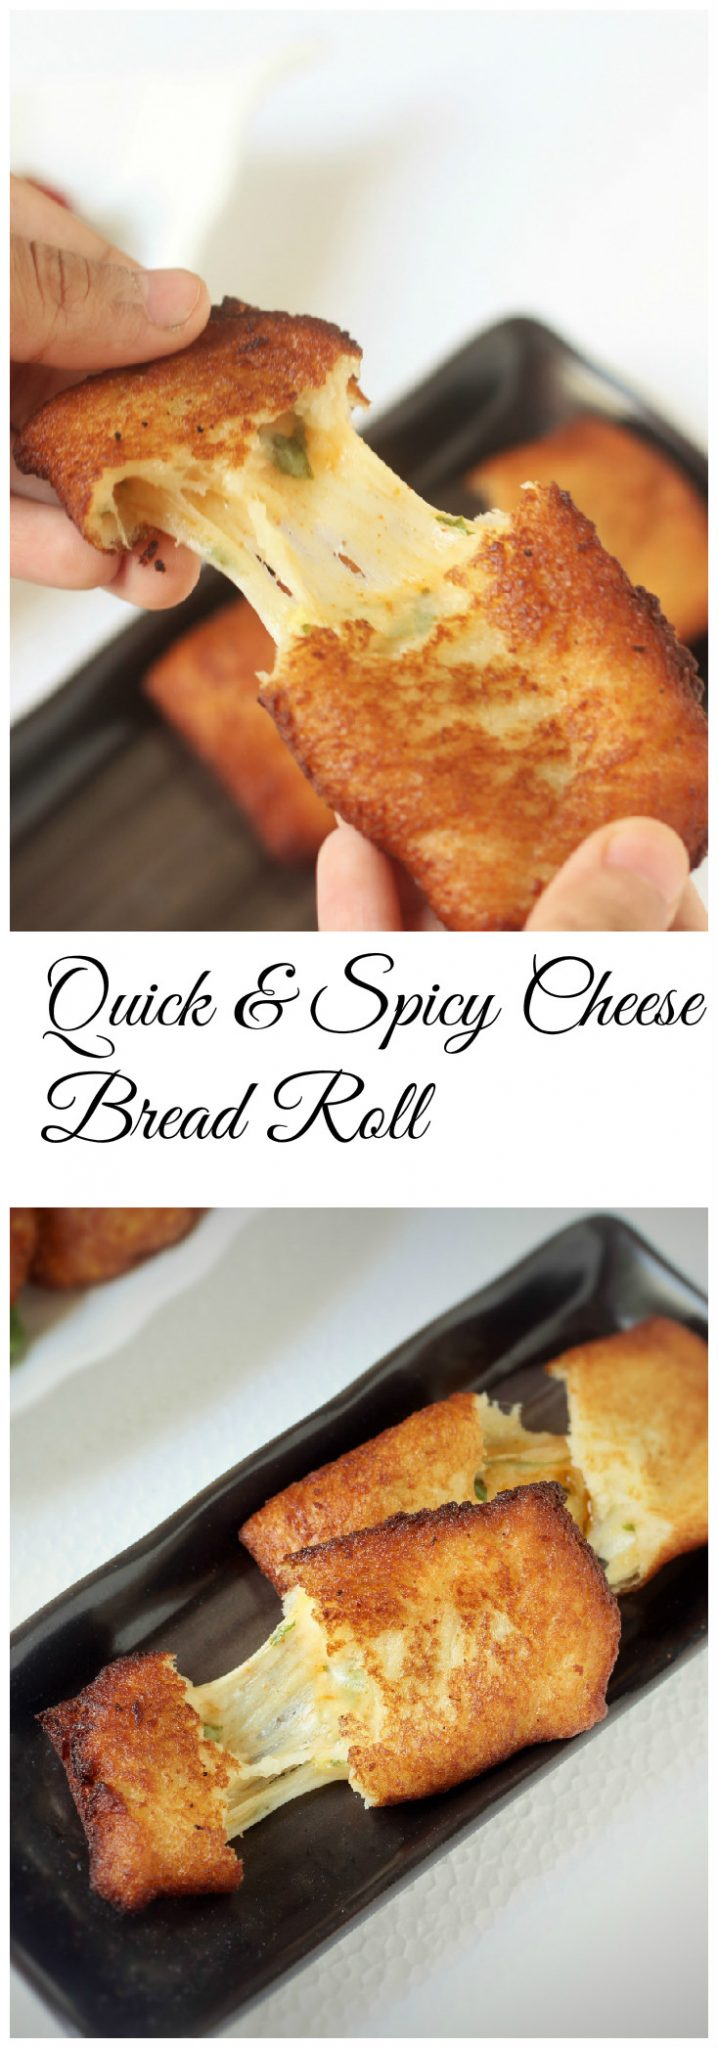 Easy and Spicy Cheese Bread Roll